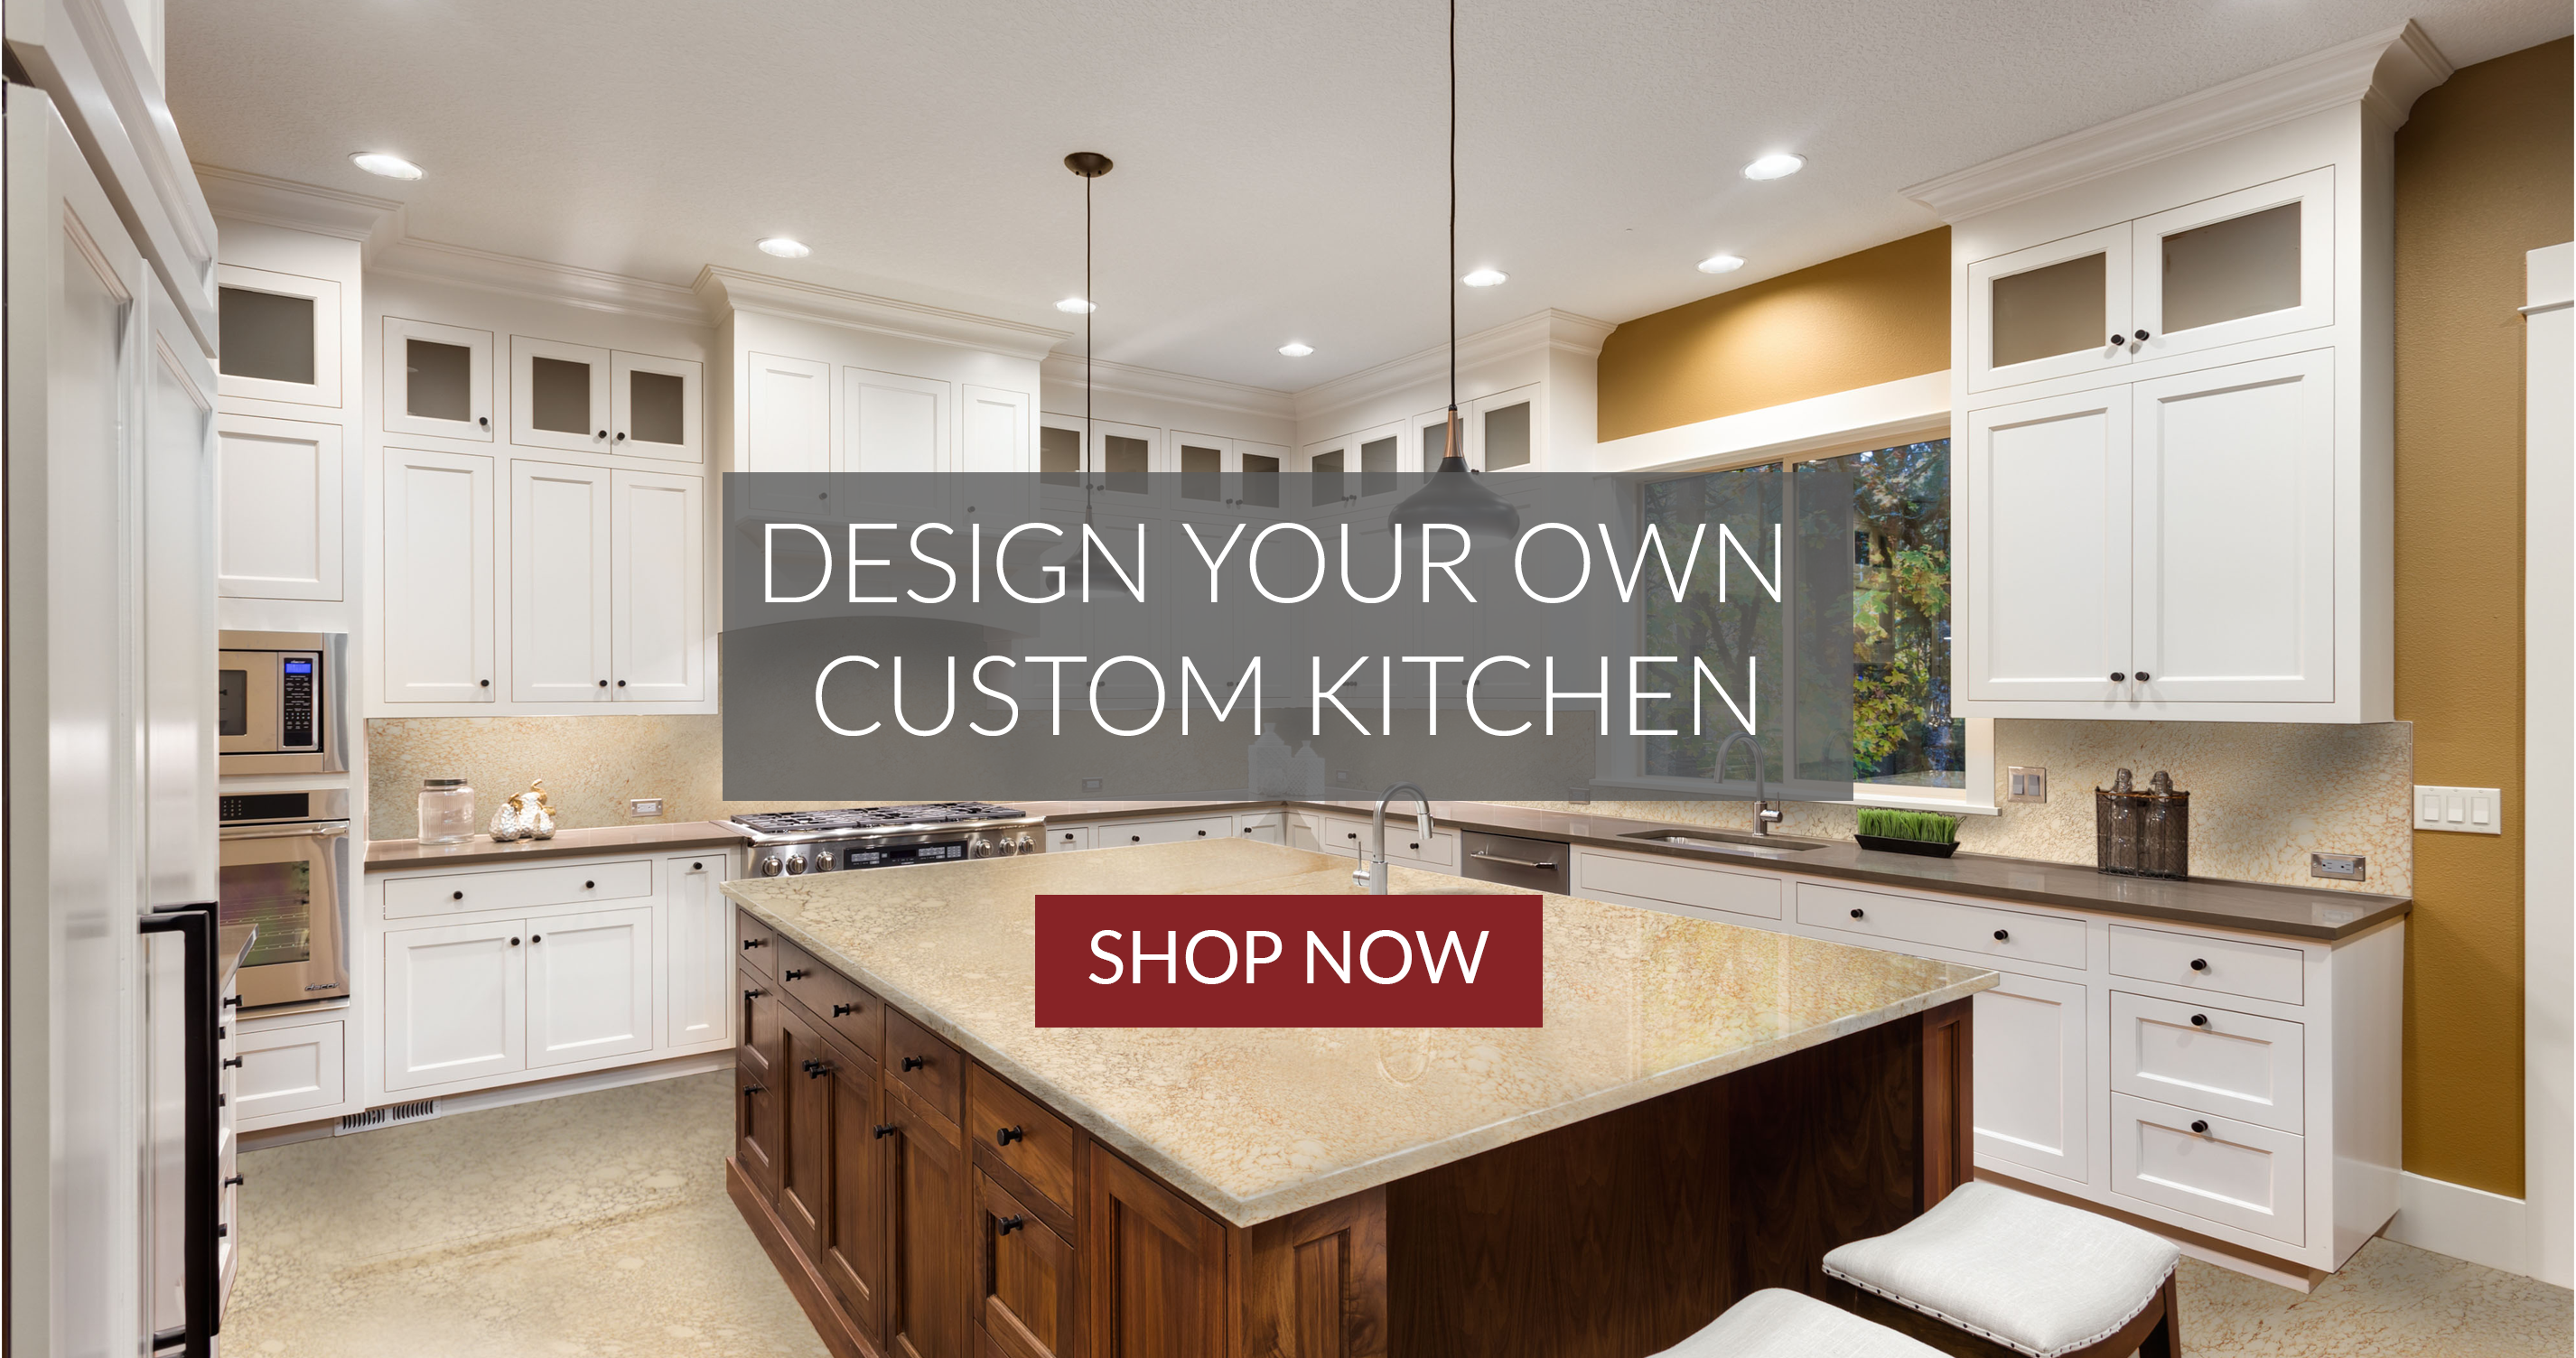 Easily Refinish Countertops With Epoxy Countertop Epoxy With